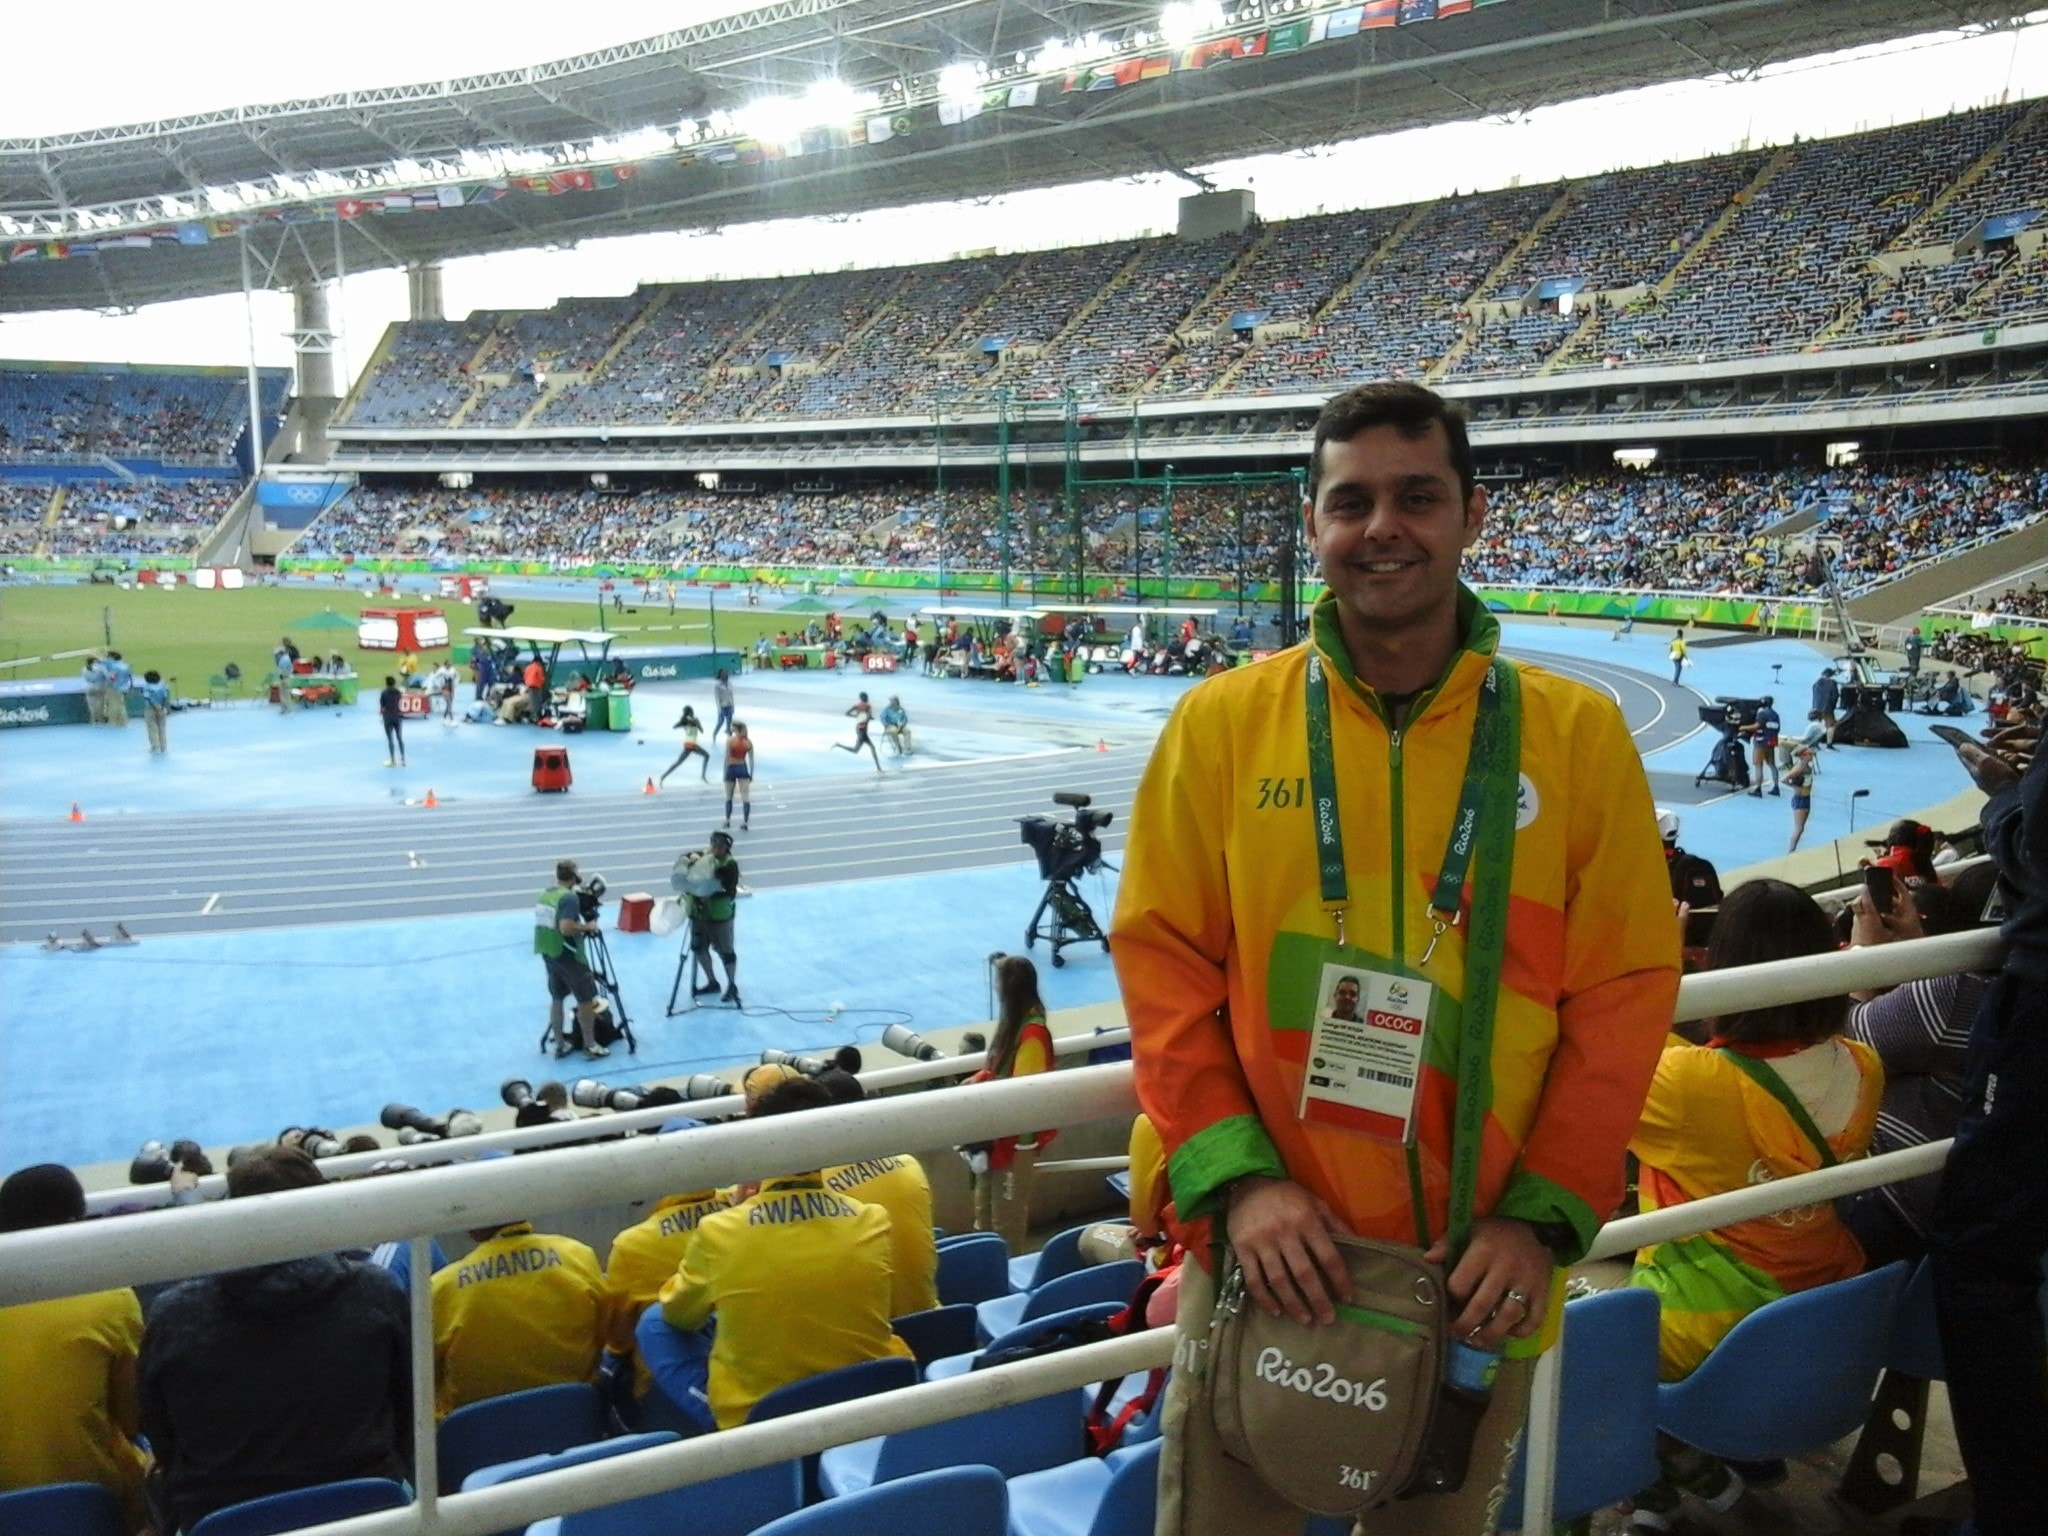 Rio 2016 Olympic Volunteer Uniform